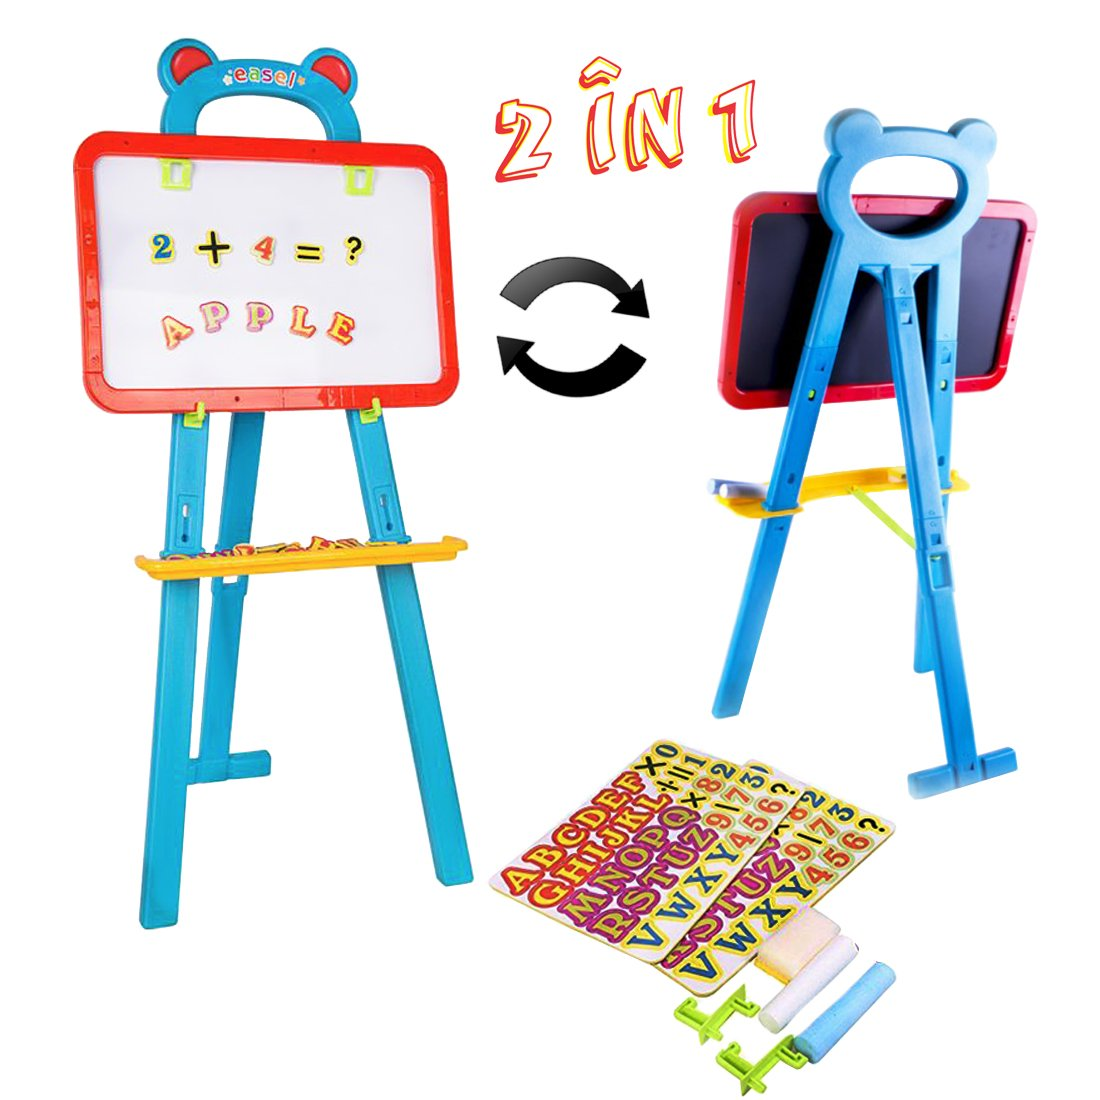 3 in1 Children Easel - Double Sided Easel with Magnetic Board and Chalk Board and Paper ties included - Educational and Learning Easel Prime Furnishing